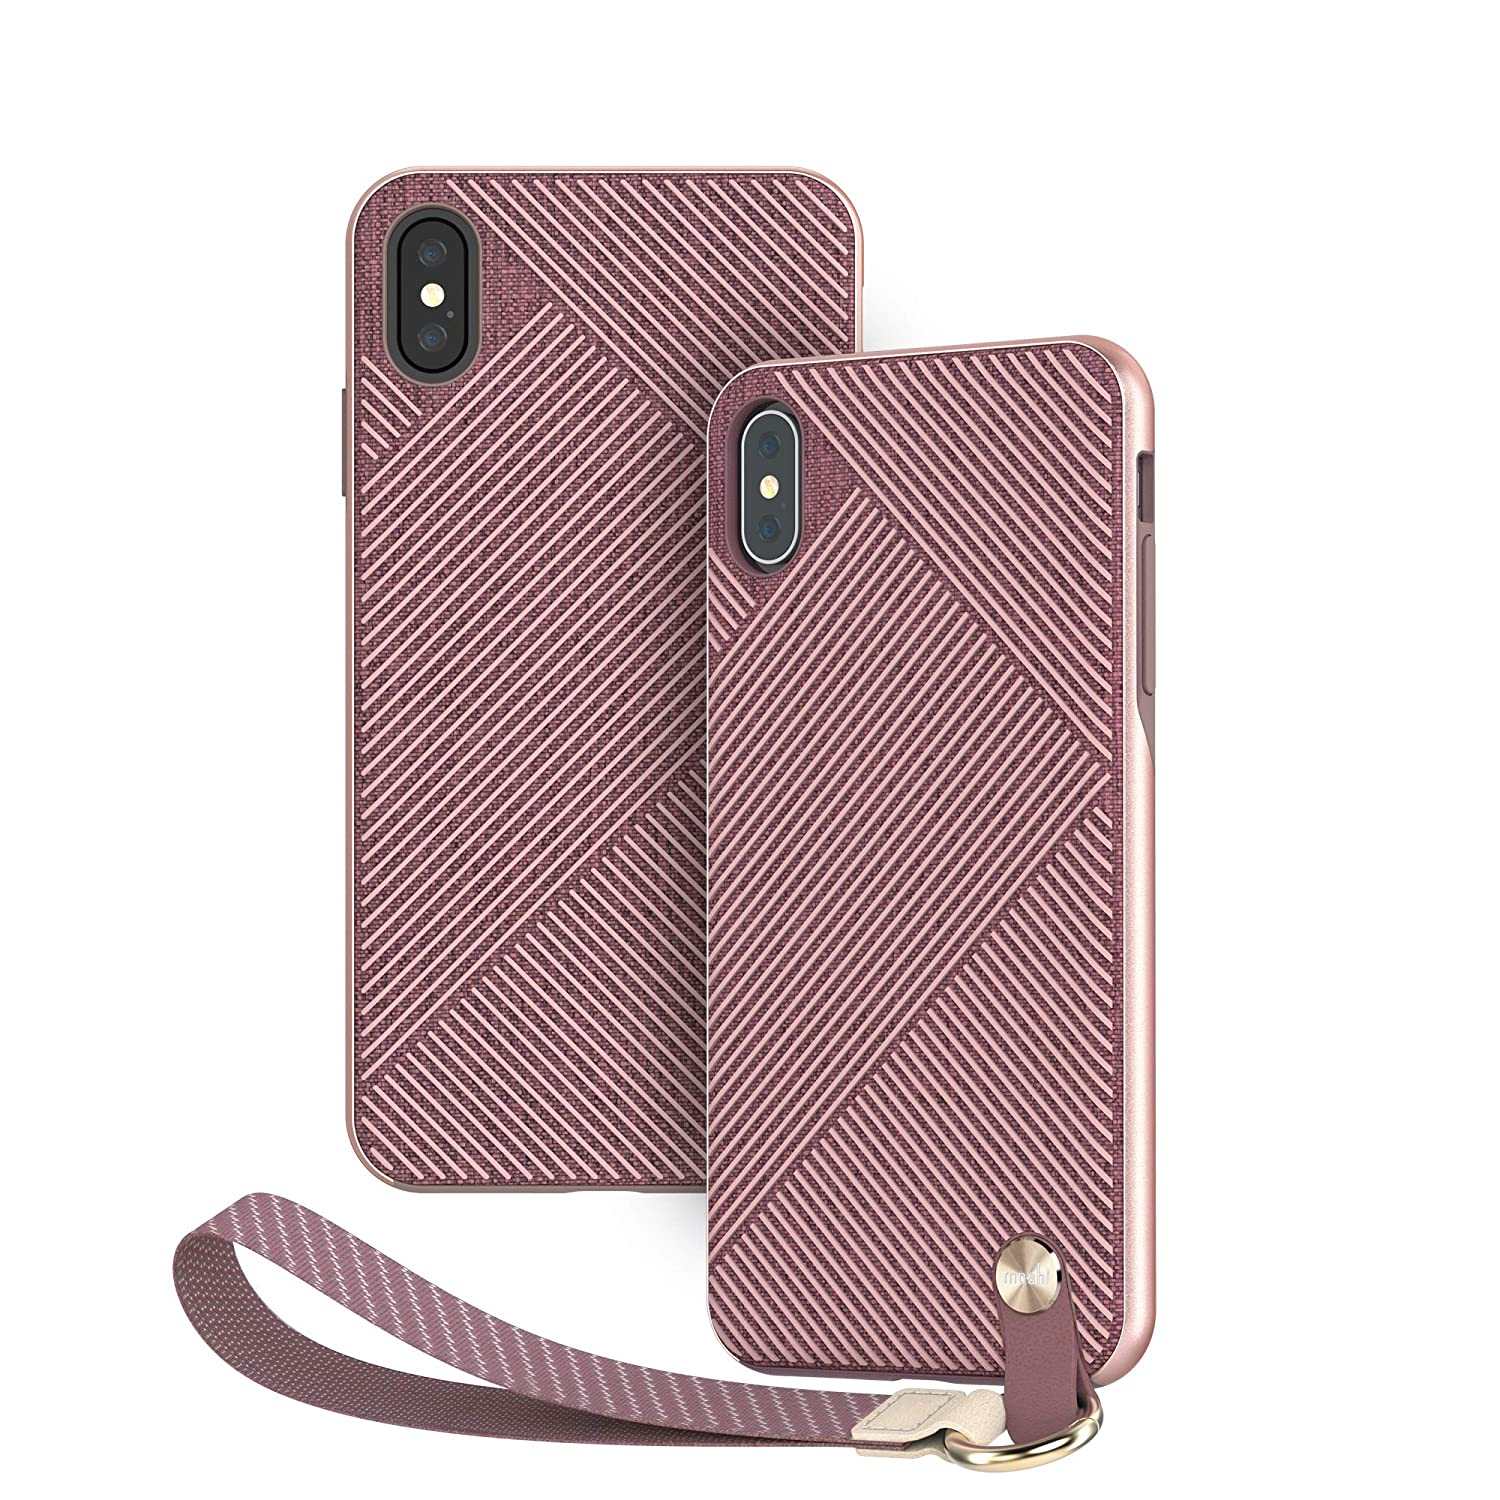 sale retailer dccc2 819ca Moshi Altra Slim Hardshell Case with Strap for iPhone Xs Max - Pink